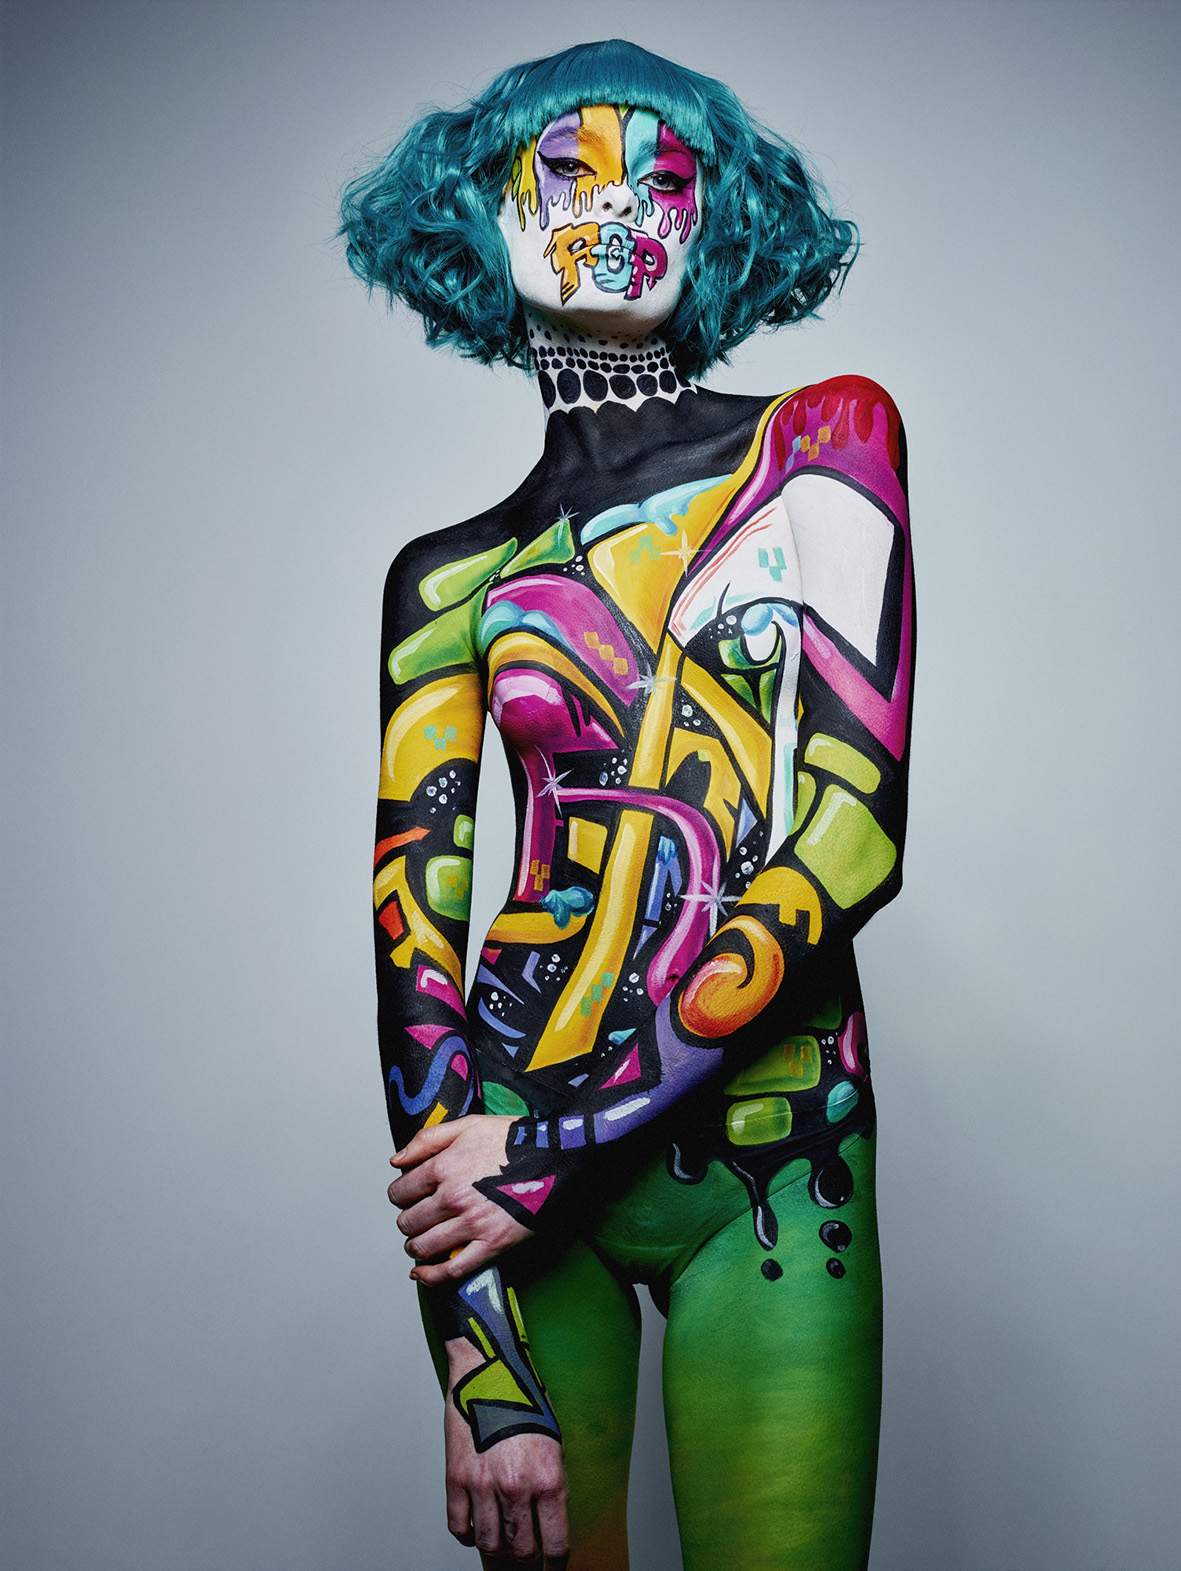 Australian Body Art Festival Tickets Go On Sale